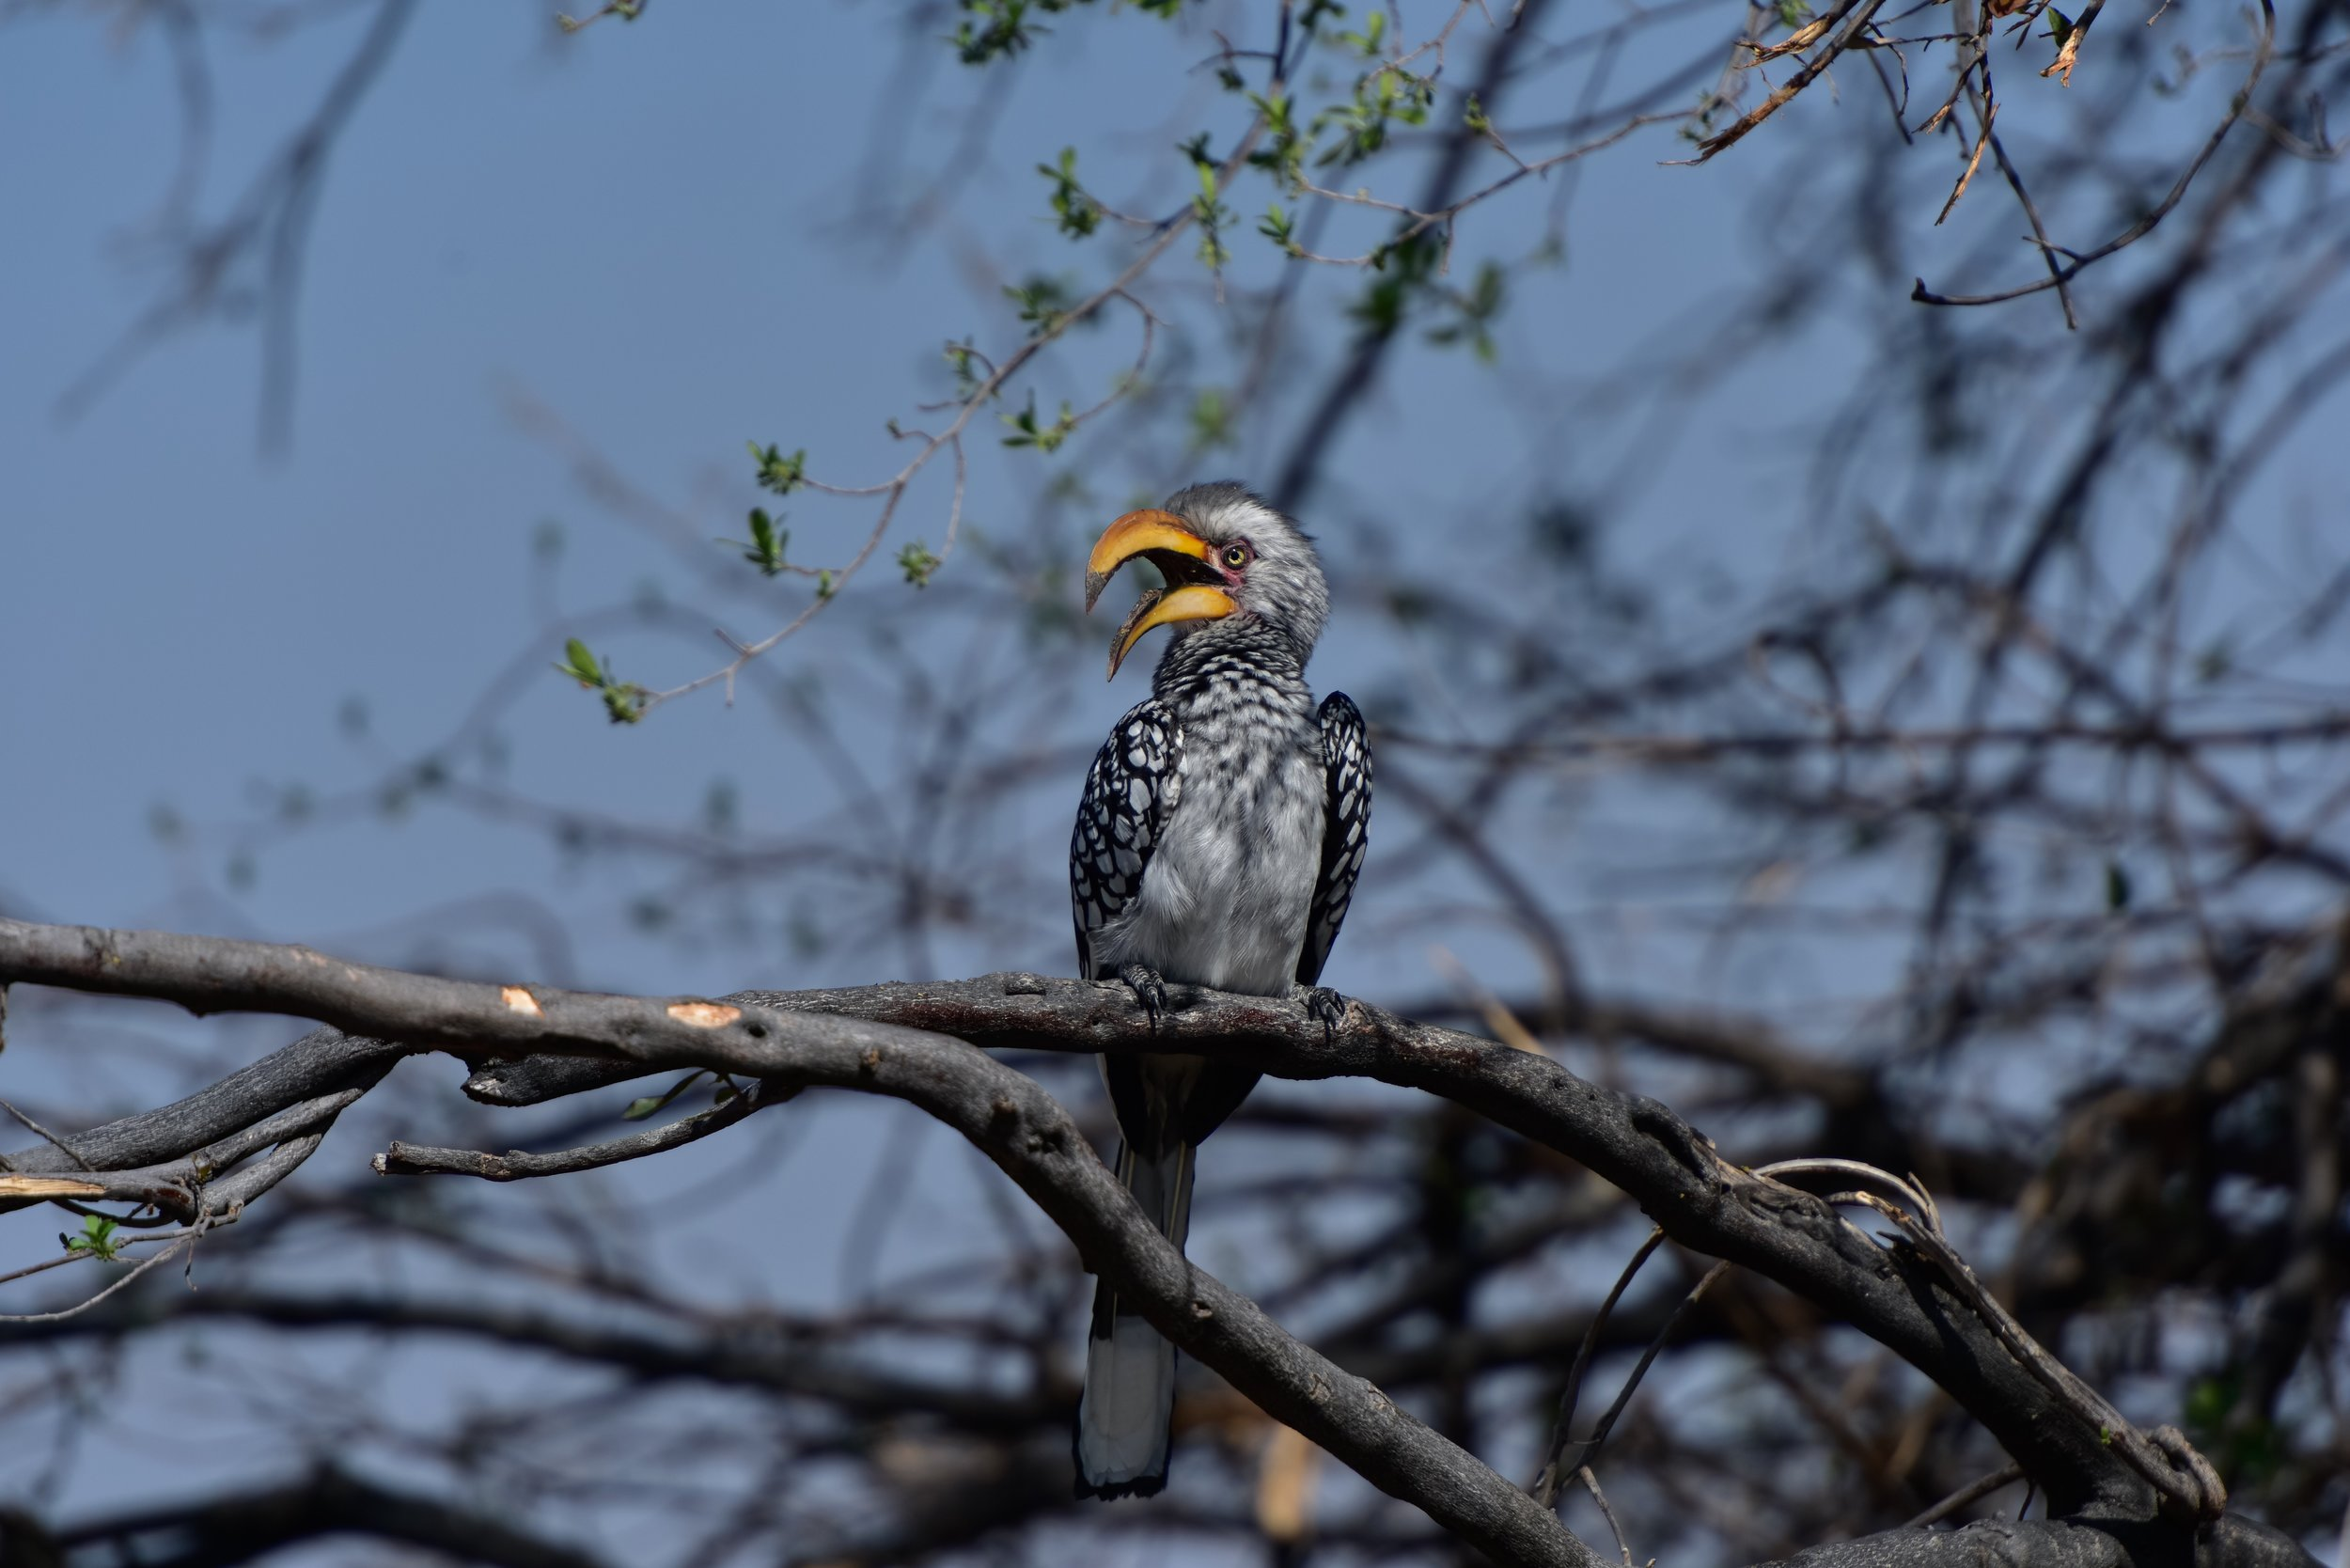 A horn-billed something or other. Or as I like like to call him, Angry Bird.